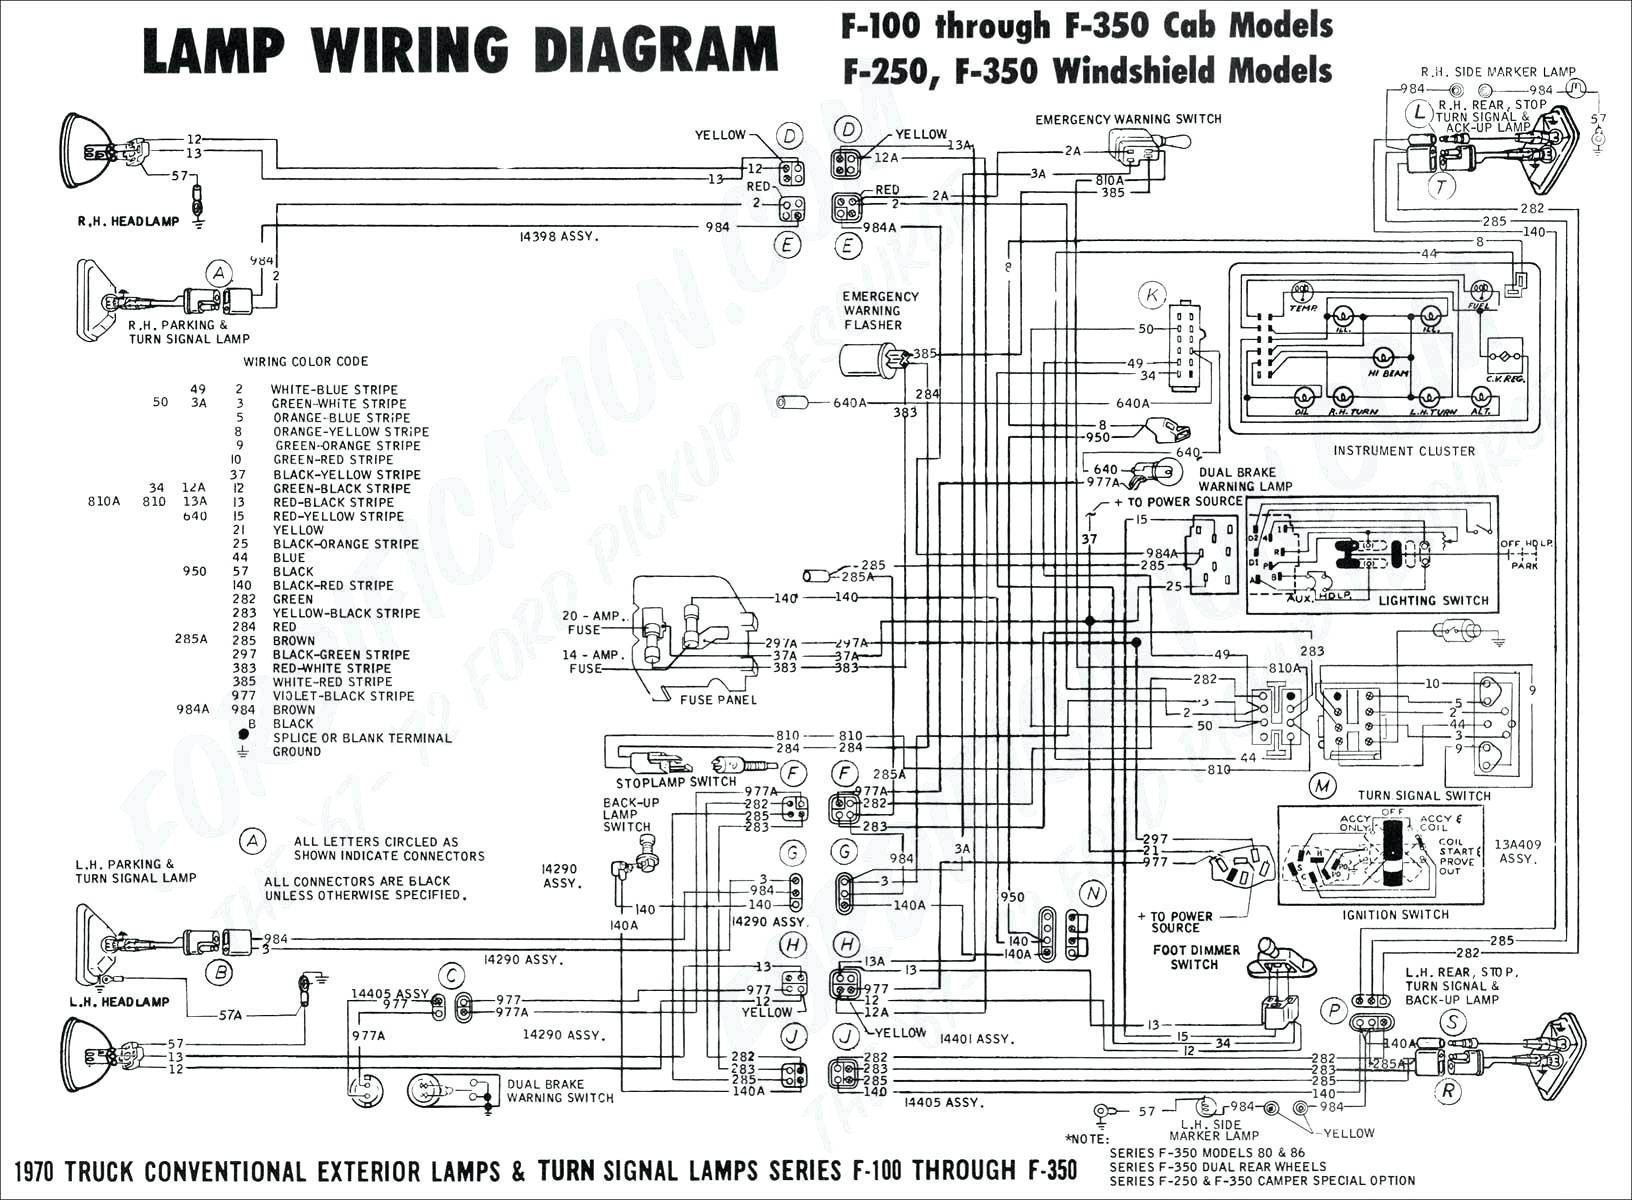 Mitsubishi Mini Truck Wiring Diagram - Nice Sharing Of Wiring Diagram on wiring diagram for toyota avalon, wiring diagram for mazda 323, wiring diagram for honda accord, wiring diagram for toyota pickup, wiring diagram for chevrolet malibu, wiring diagram for lincoln navigator, wiring diagram for jeep commander, wiring diagram for toyota tundra, wiring diagram for lincoln town car, wiring diagram for ford windstar, wiring diagram for nissan pathfinder, wiring diagram for buick park avenue, wiring diagram for ford explorer, wiring diagram for jeep tj, wiring diagram for isuzu axiom, wiring diagram for plymouth breeze, wiring diagram for hyundai accent, wiring diagram for dodge dakota, wiring diagram for pontiac bonneville, wiring diagram for jaguar xk8,